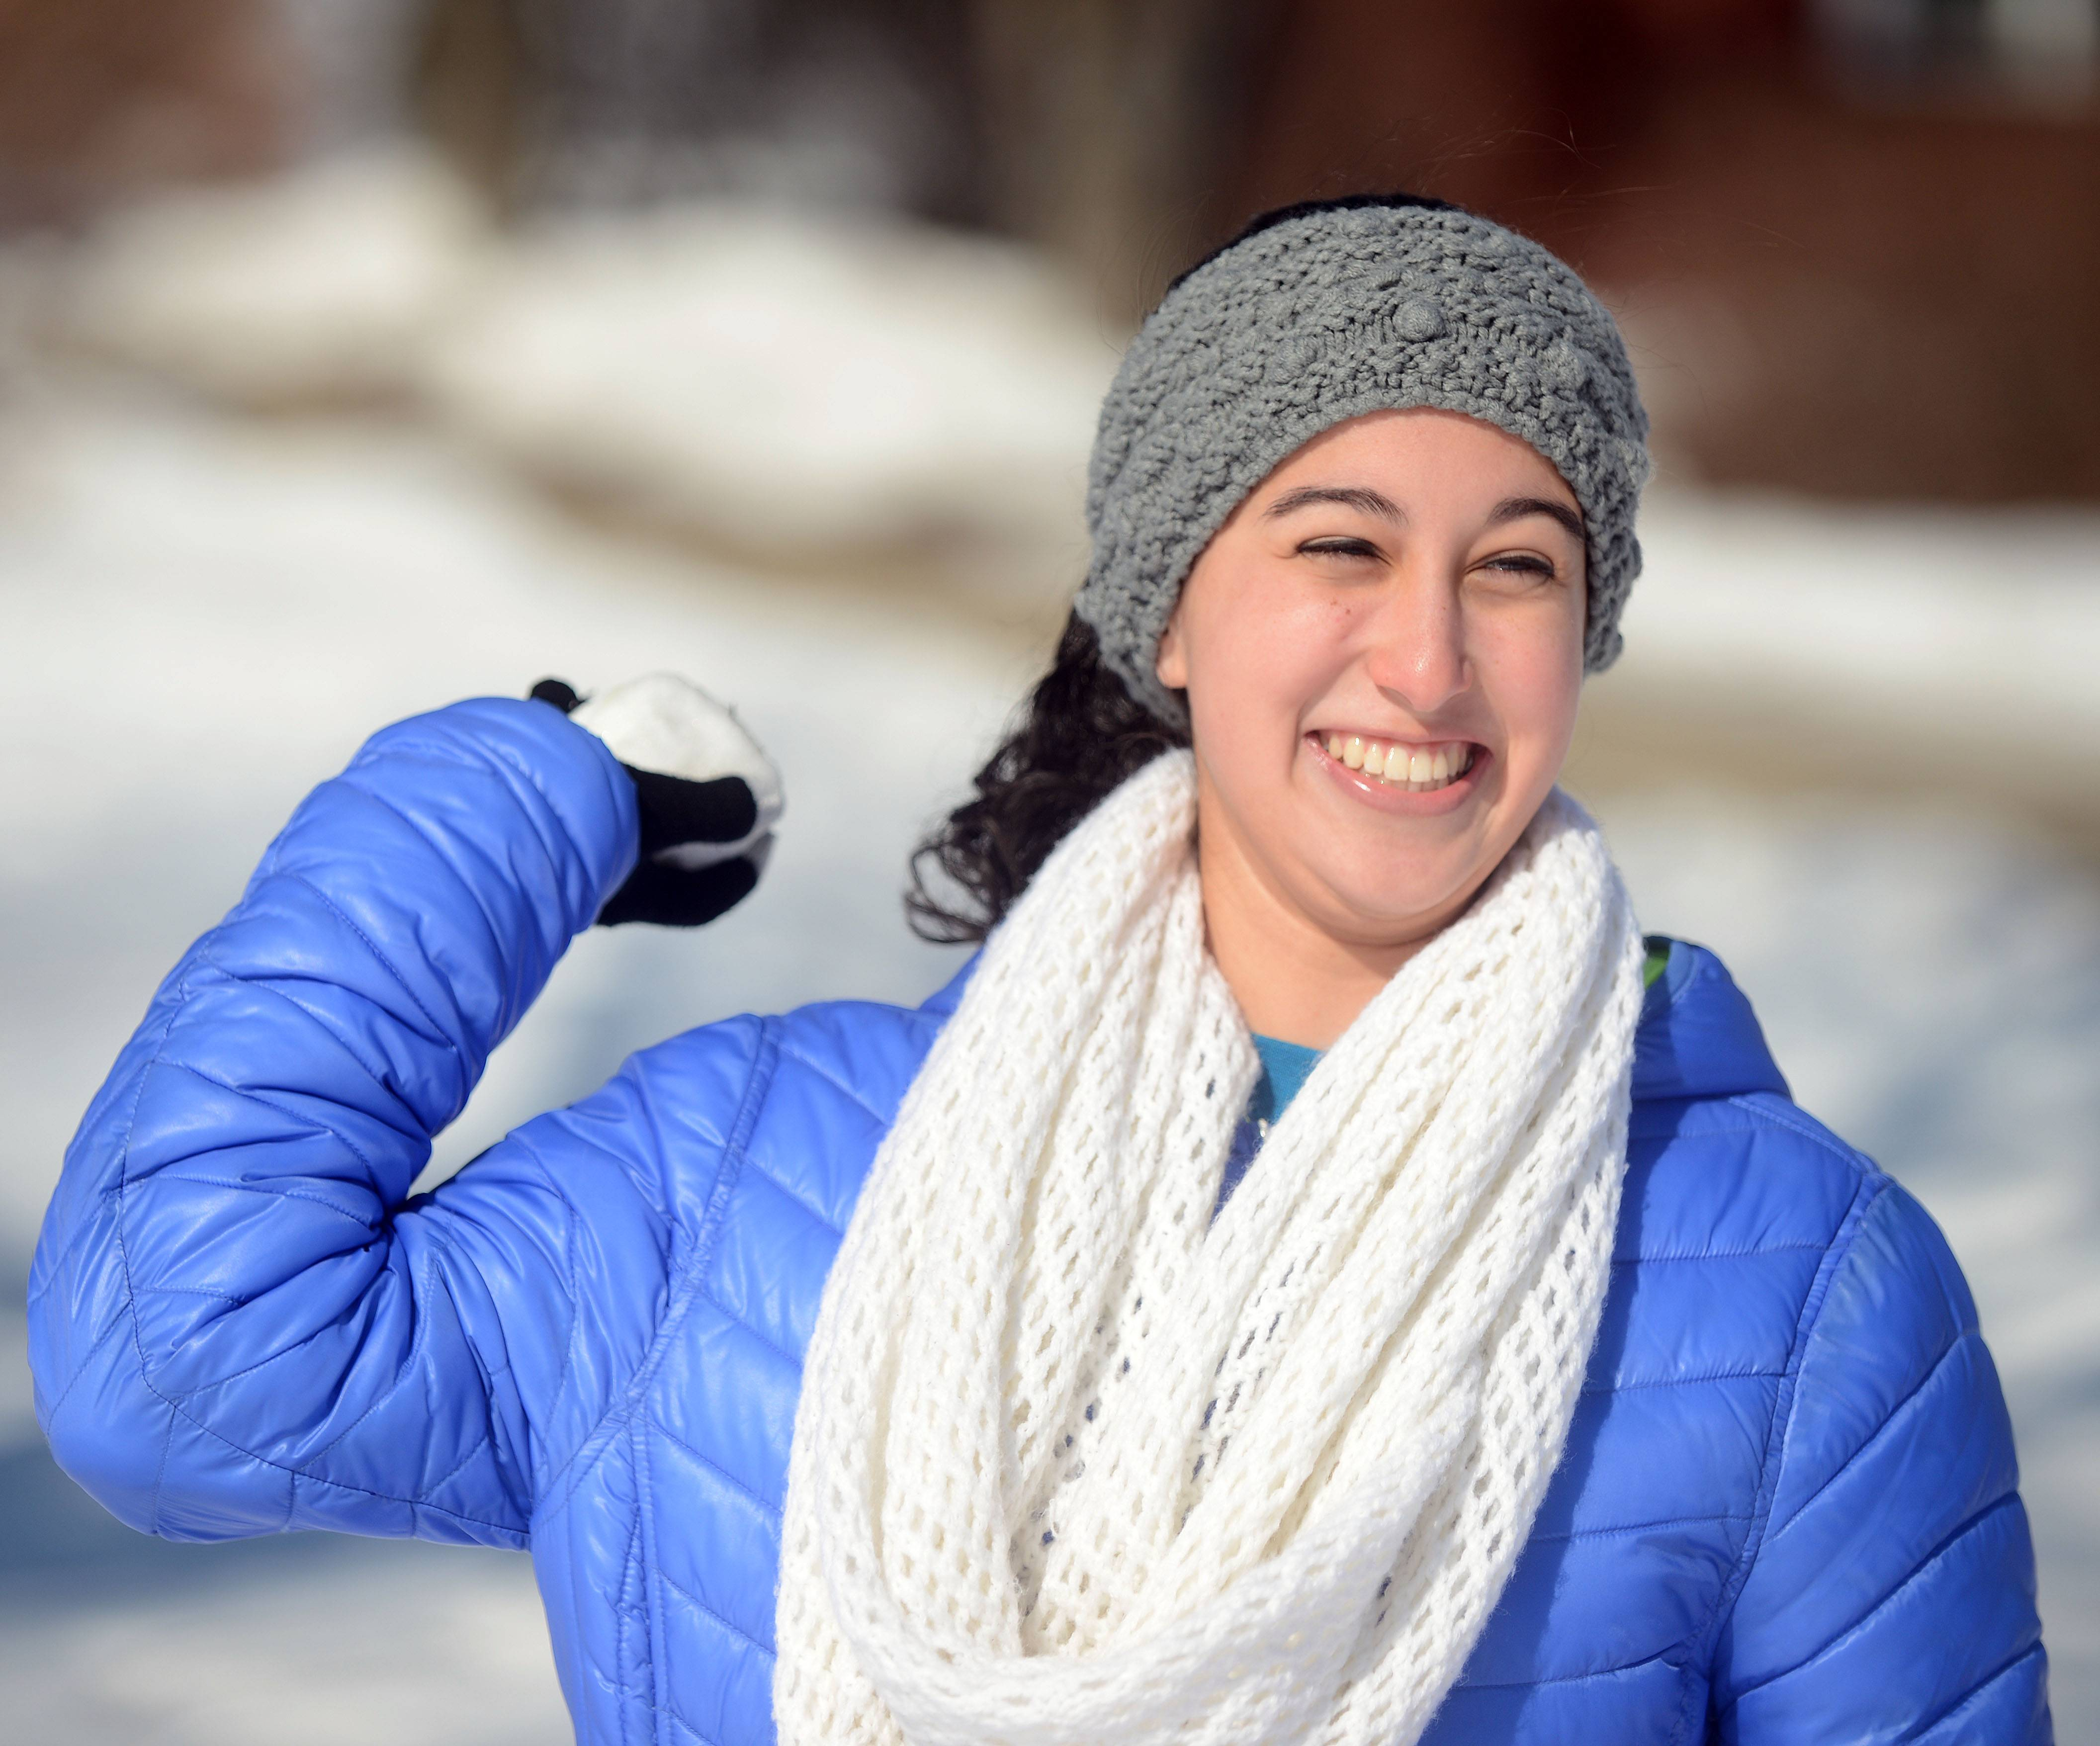 Emily Maruyama, 16, of Glen Ellyn, plays the snowball toss game during the Arctic Blast at Lake Ellyn in Glen Ellyn Sunday. Ice skating and sled races, snowball toss, snow art, hot chocolate and roasted marshmallows for sale were all part of the fun.